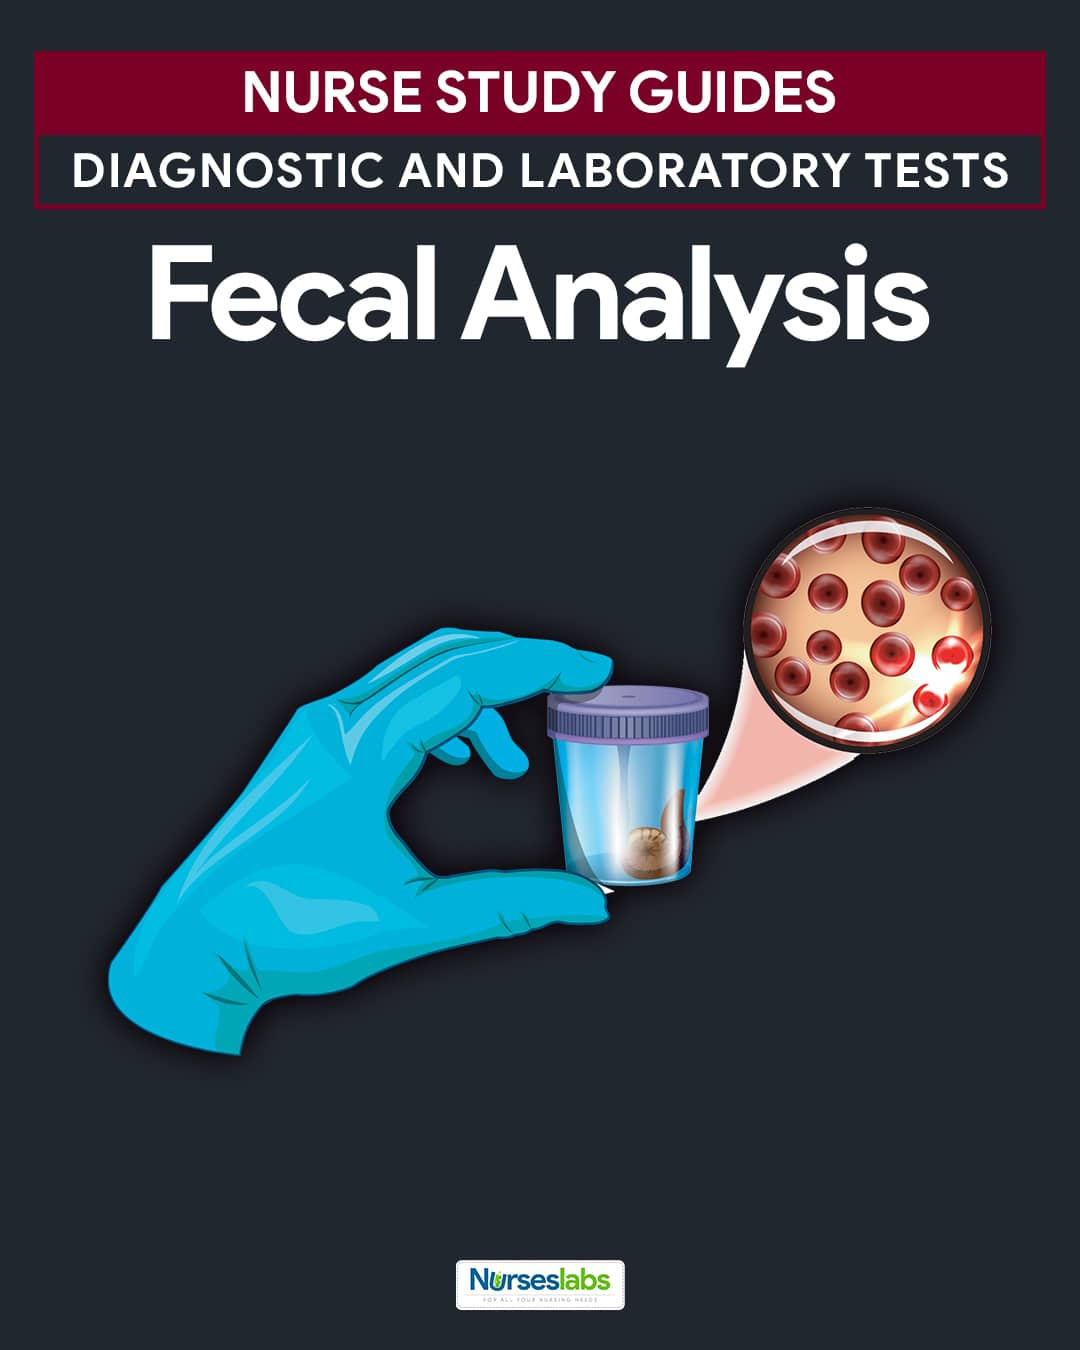 Fecal Analysis (Stool Analysis) Nursing Responsibilities